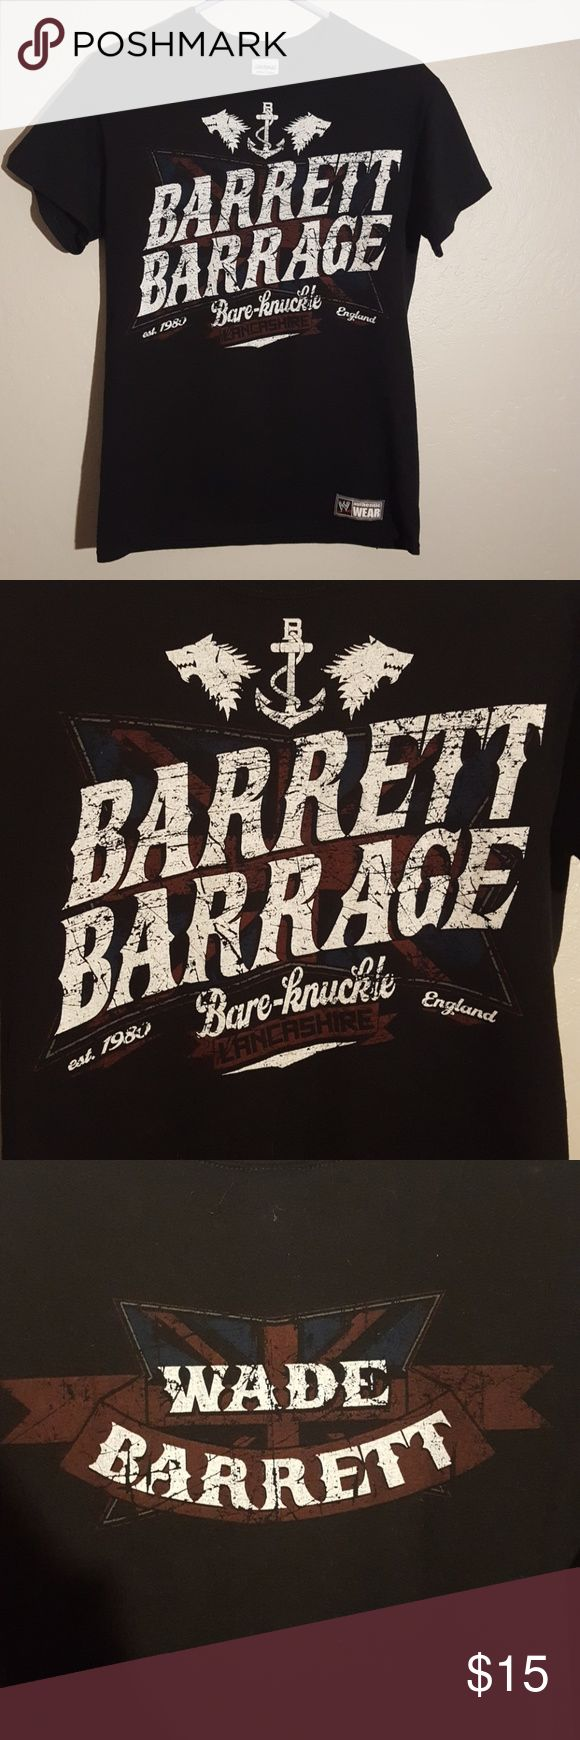 Wade Barrett WWE Shirt Men's small so a women's medium. Union Jack accented behind the logo in dark red and blue. Worn once to my brother's graduation 3 years ago. WWE Tops Tees - Short Sleeve